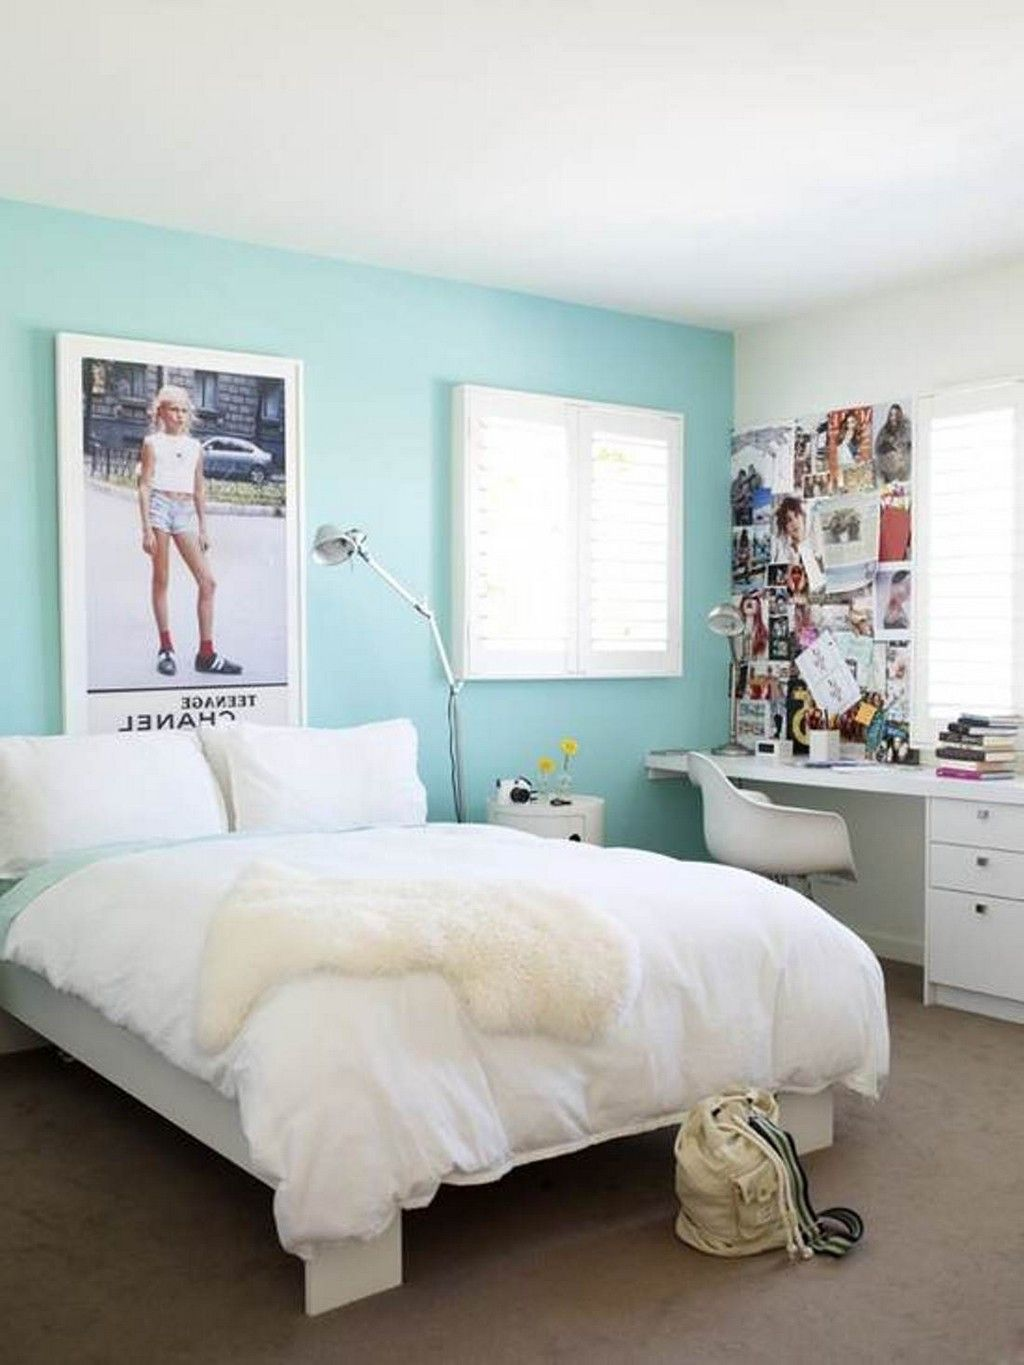 Room Color Bedroom Bedroom Calming Blue Paint Colors For Small Teen Bedroom Ideas